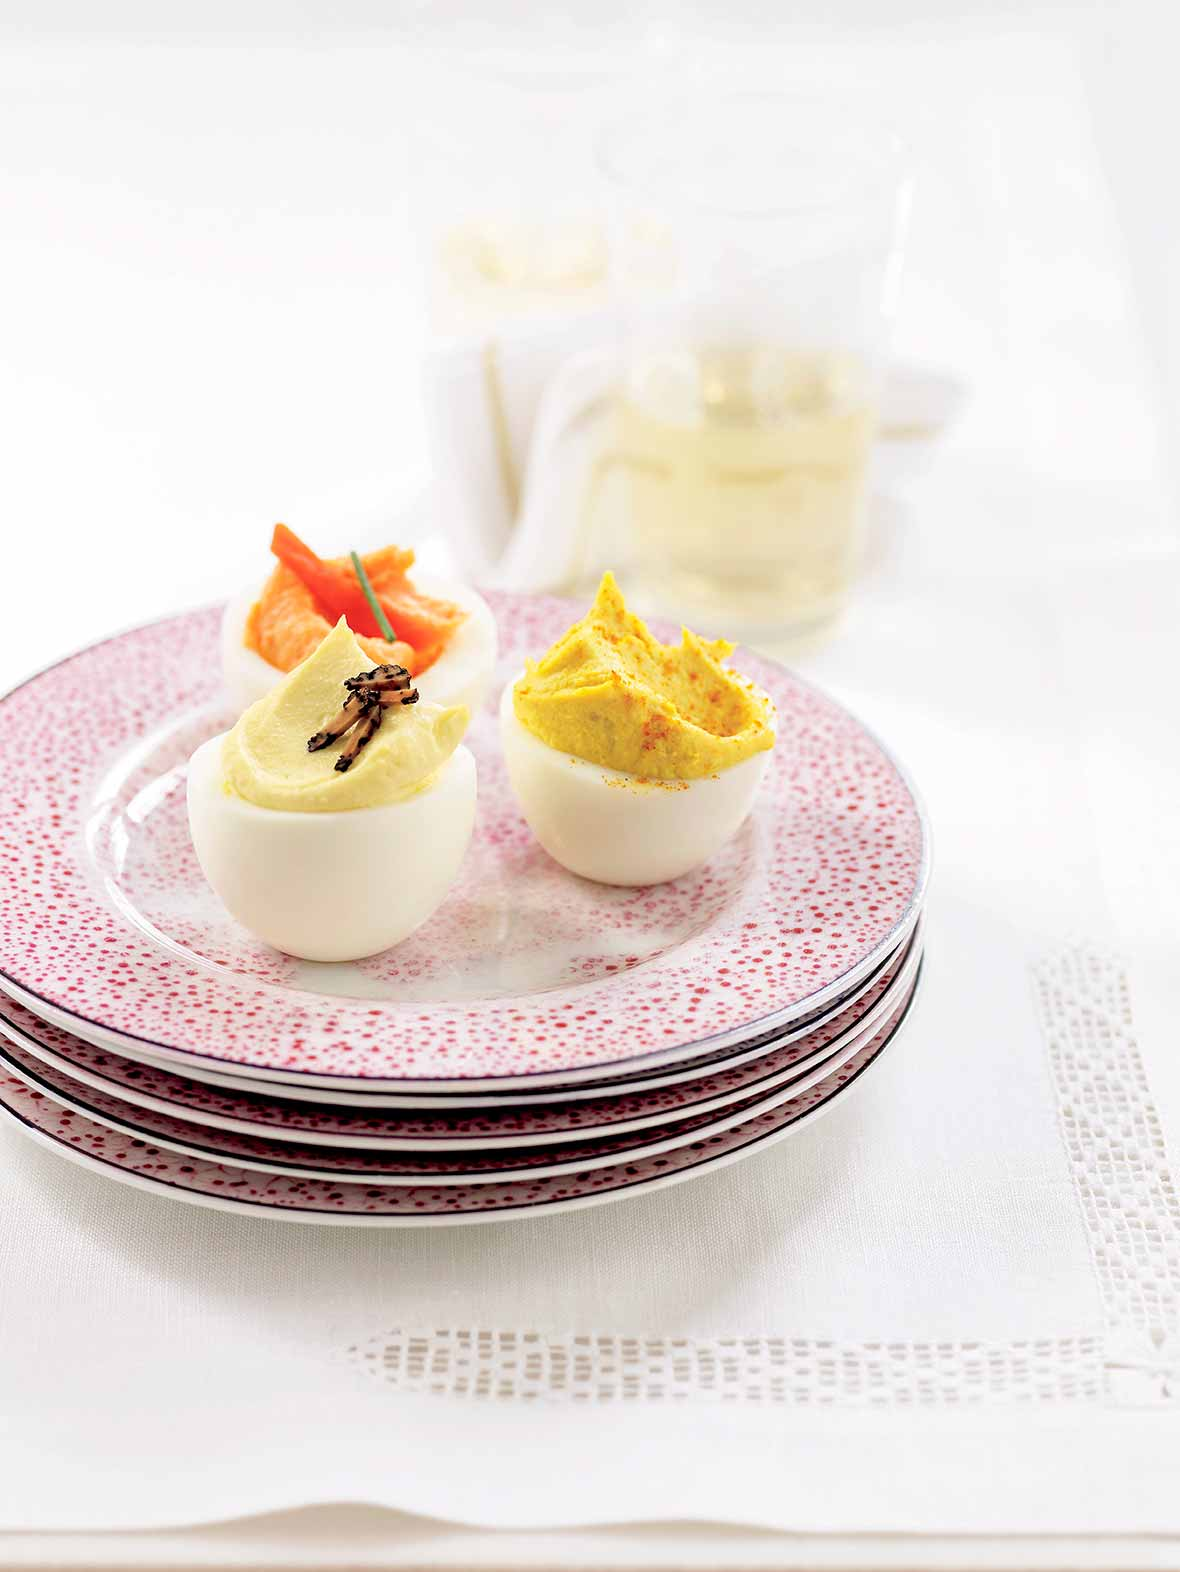 A plate with a horseradish deviled egg, truffled deviled egg, and smoked salmon deviled egg